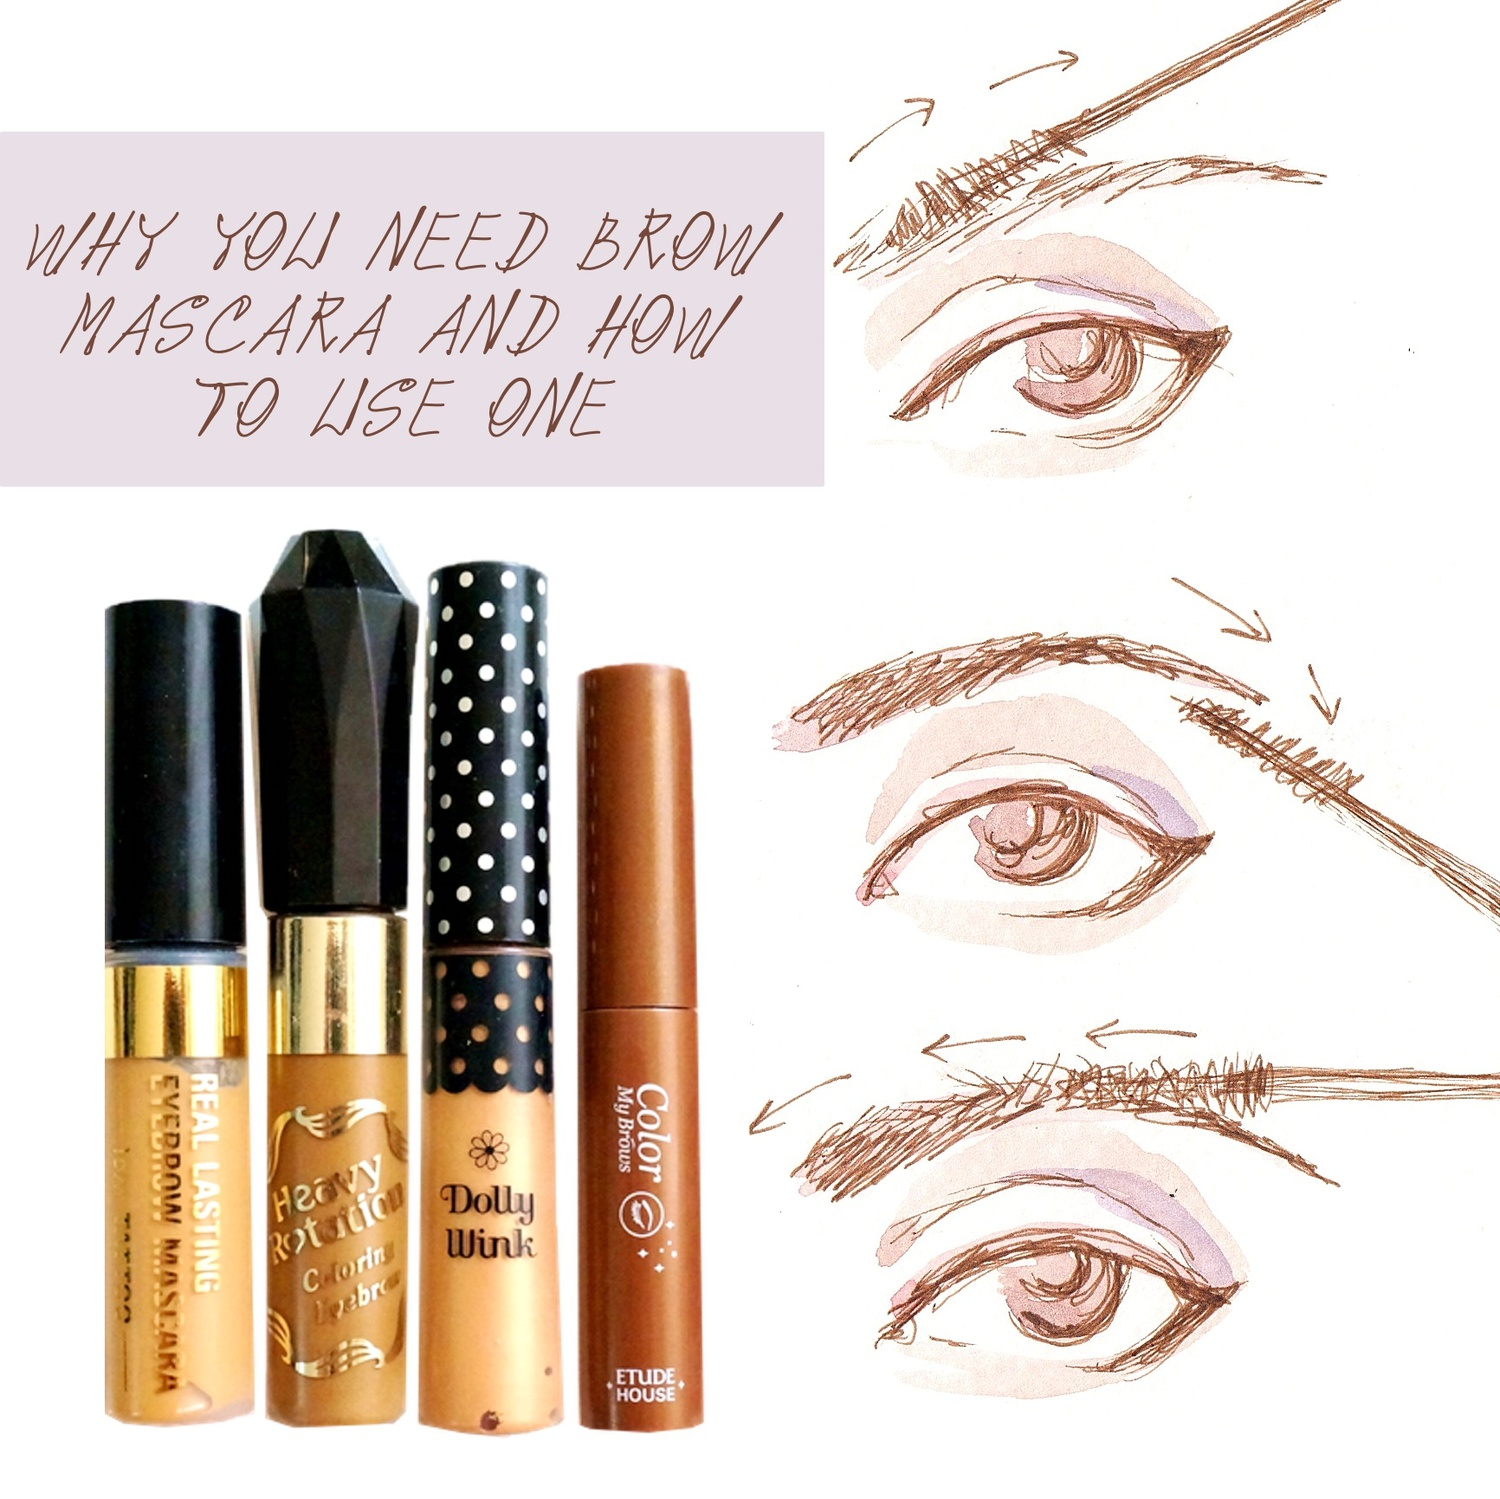 Why You Need Brow Mascara And How To Use One Project Vanity Etude House Color My